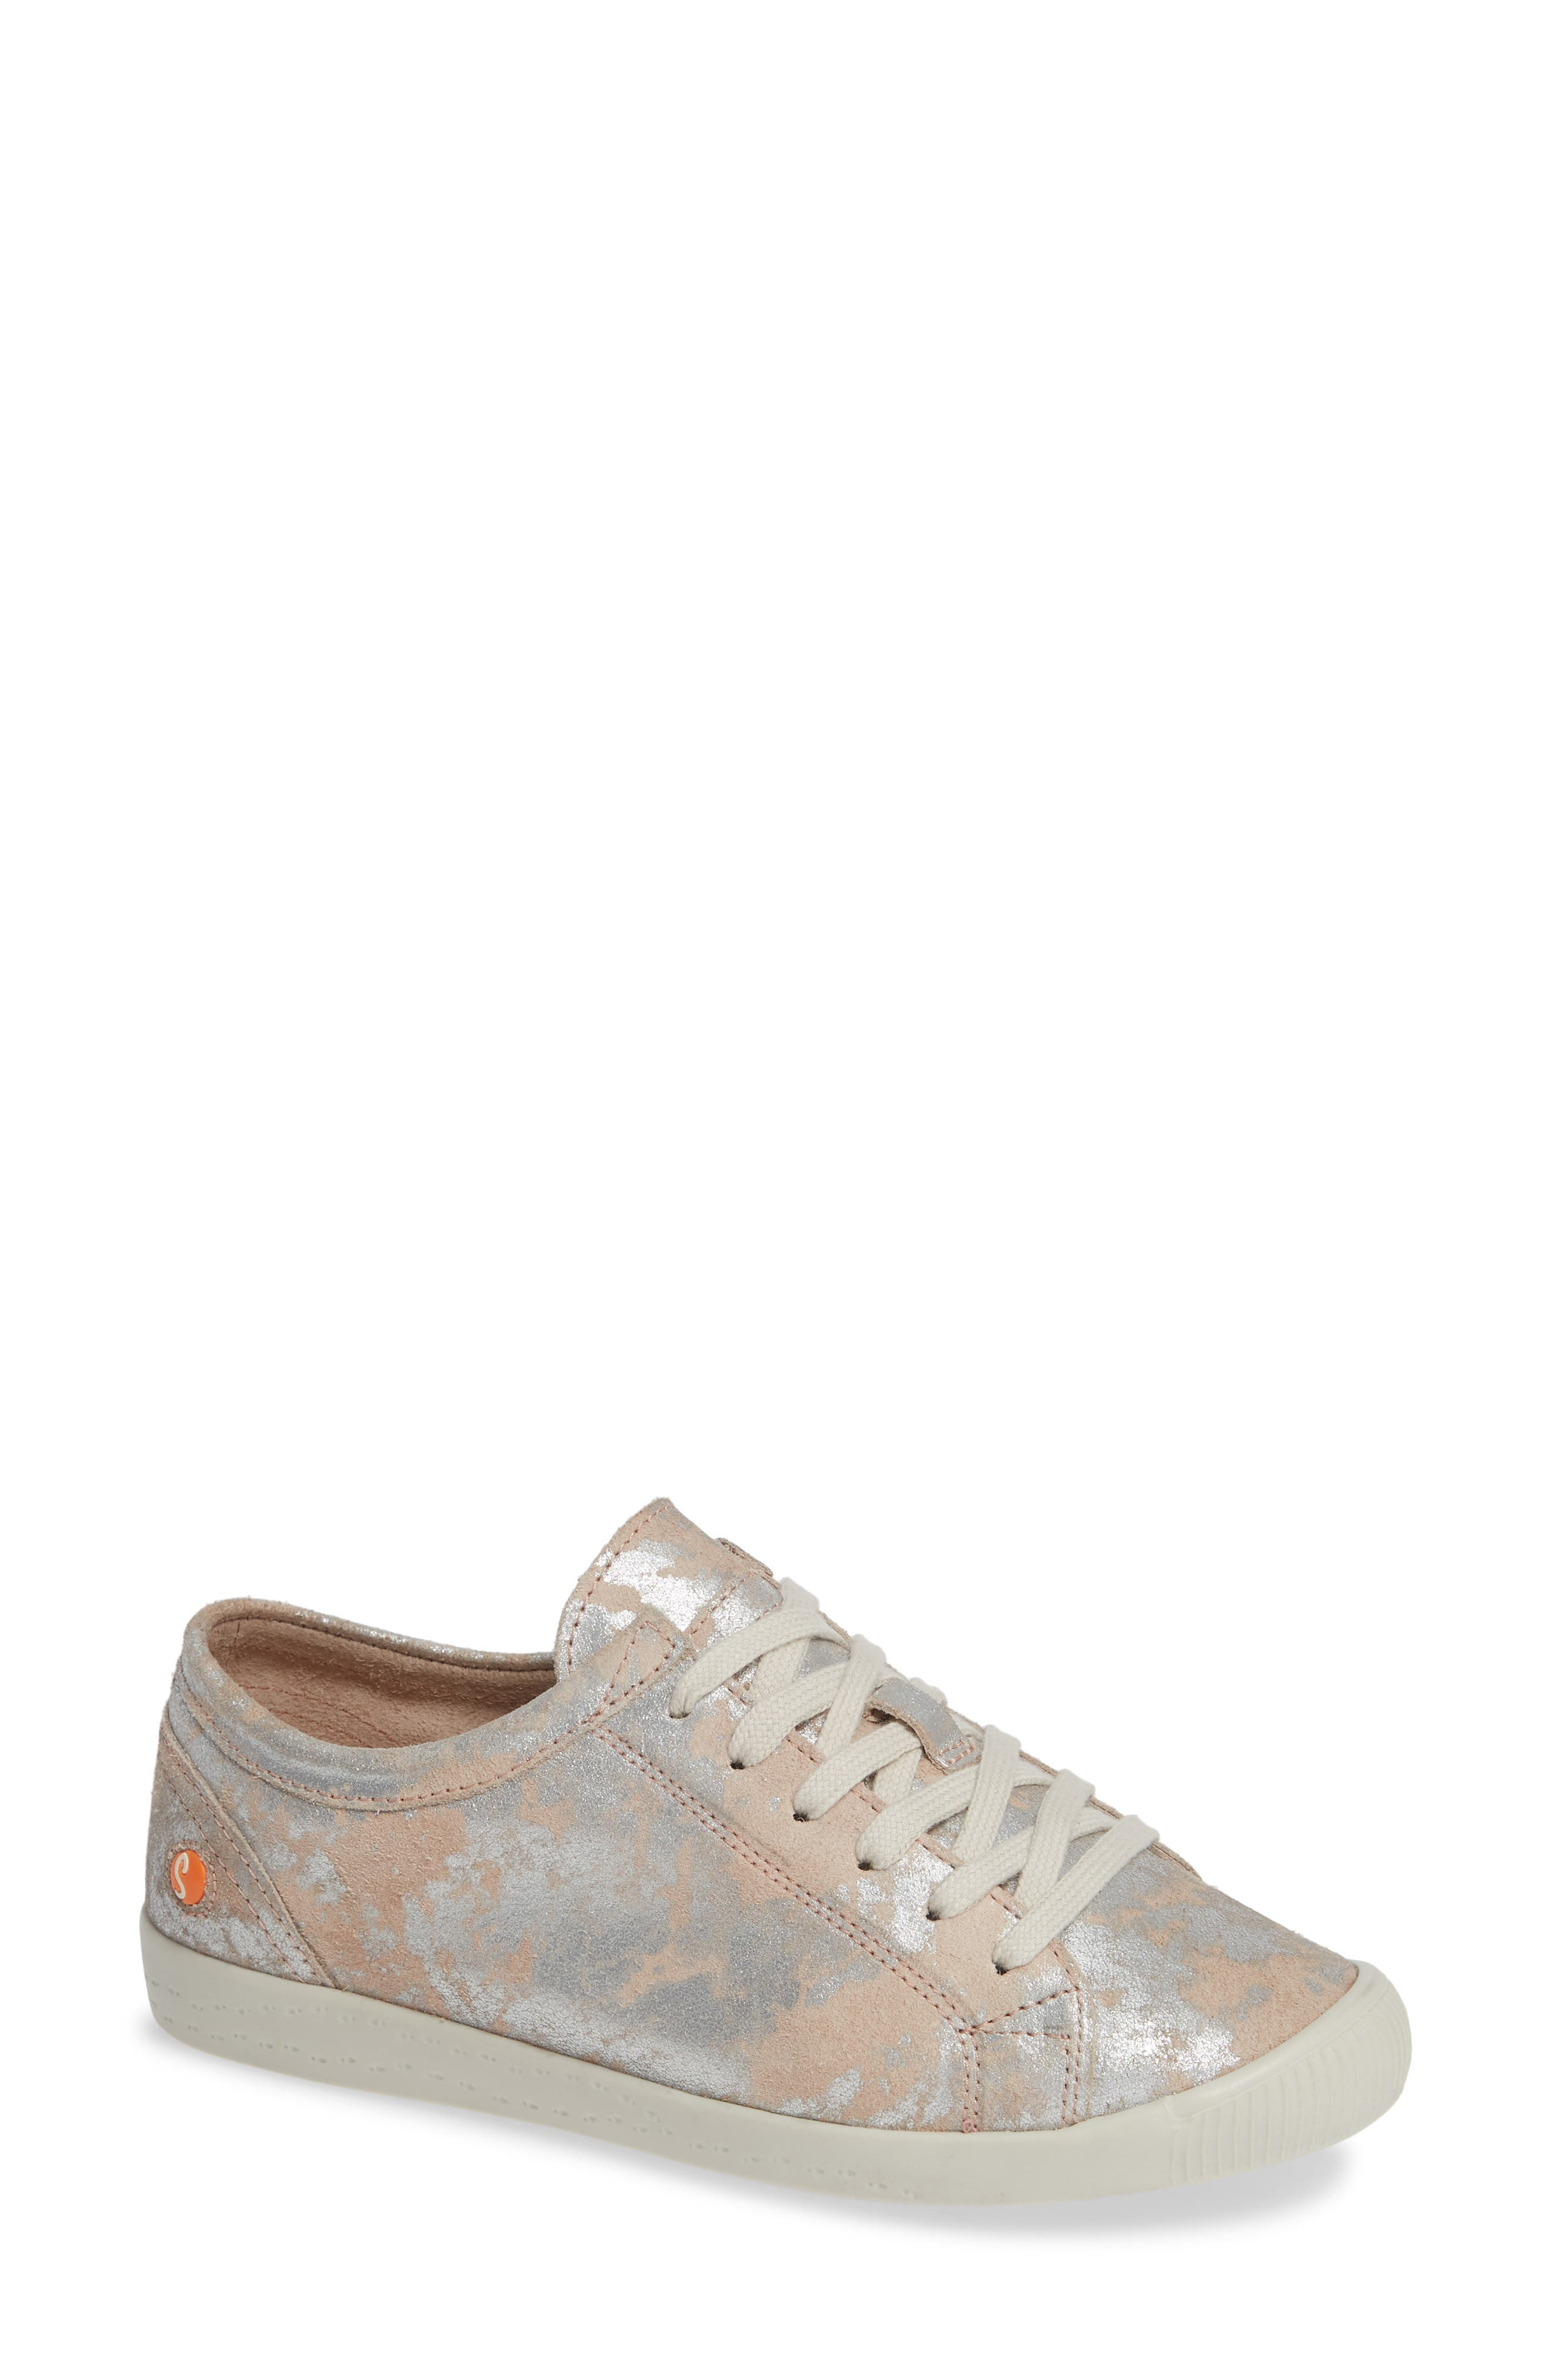 Isla Distressed Sneaker,                             Main thumbnail 1, color,                             ROSE LEATHER